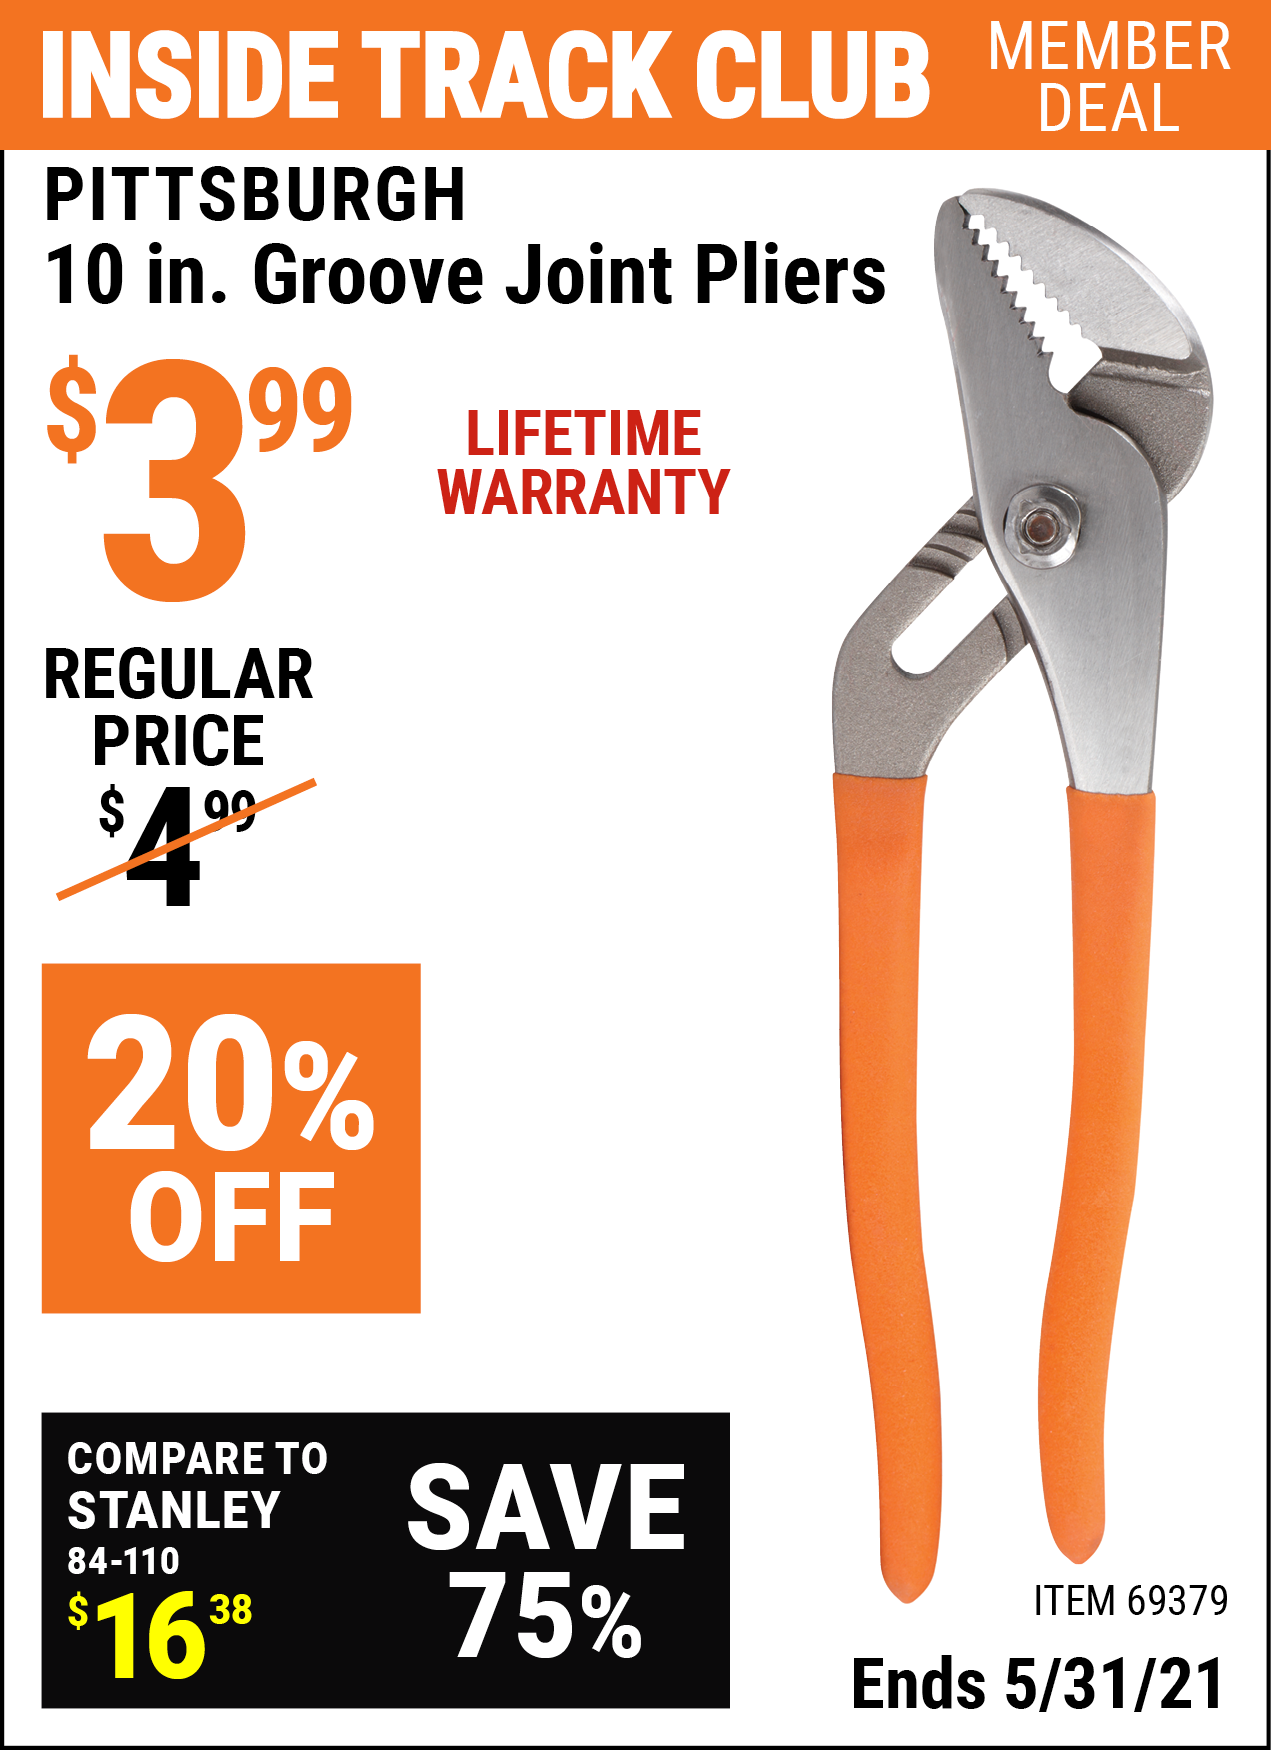 Inside Track Club members can buy the PITTSBURGH 10 in. Groove Joint Pliers (Item 69379) for $3.99, valid through 5/31/2021.